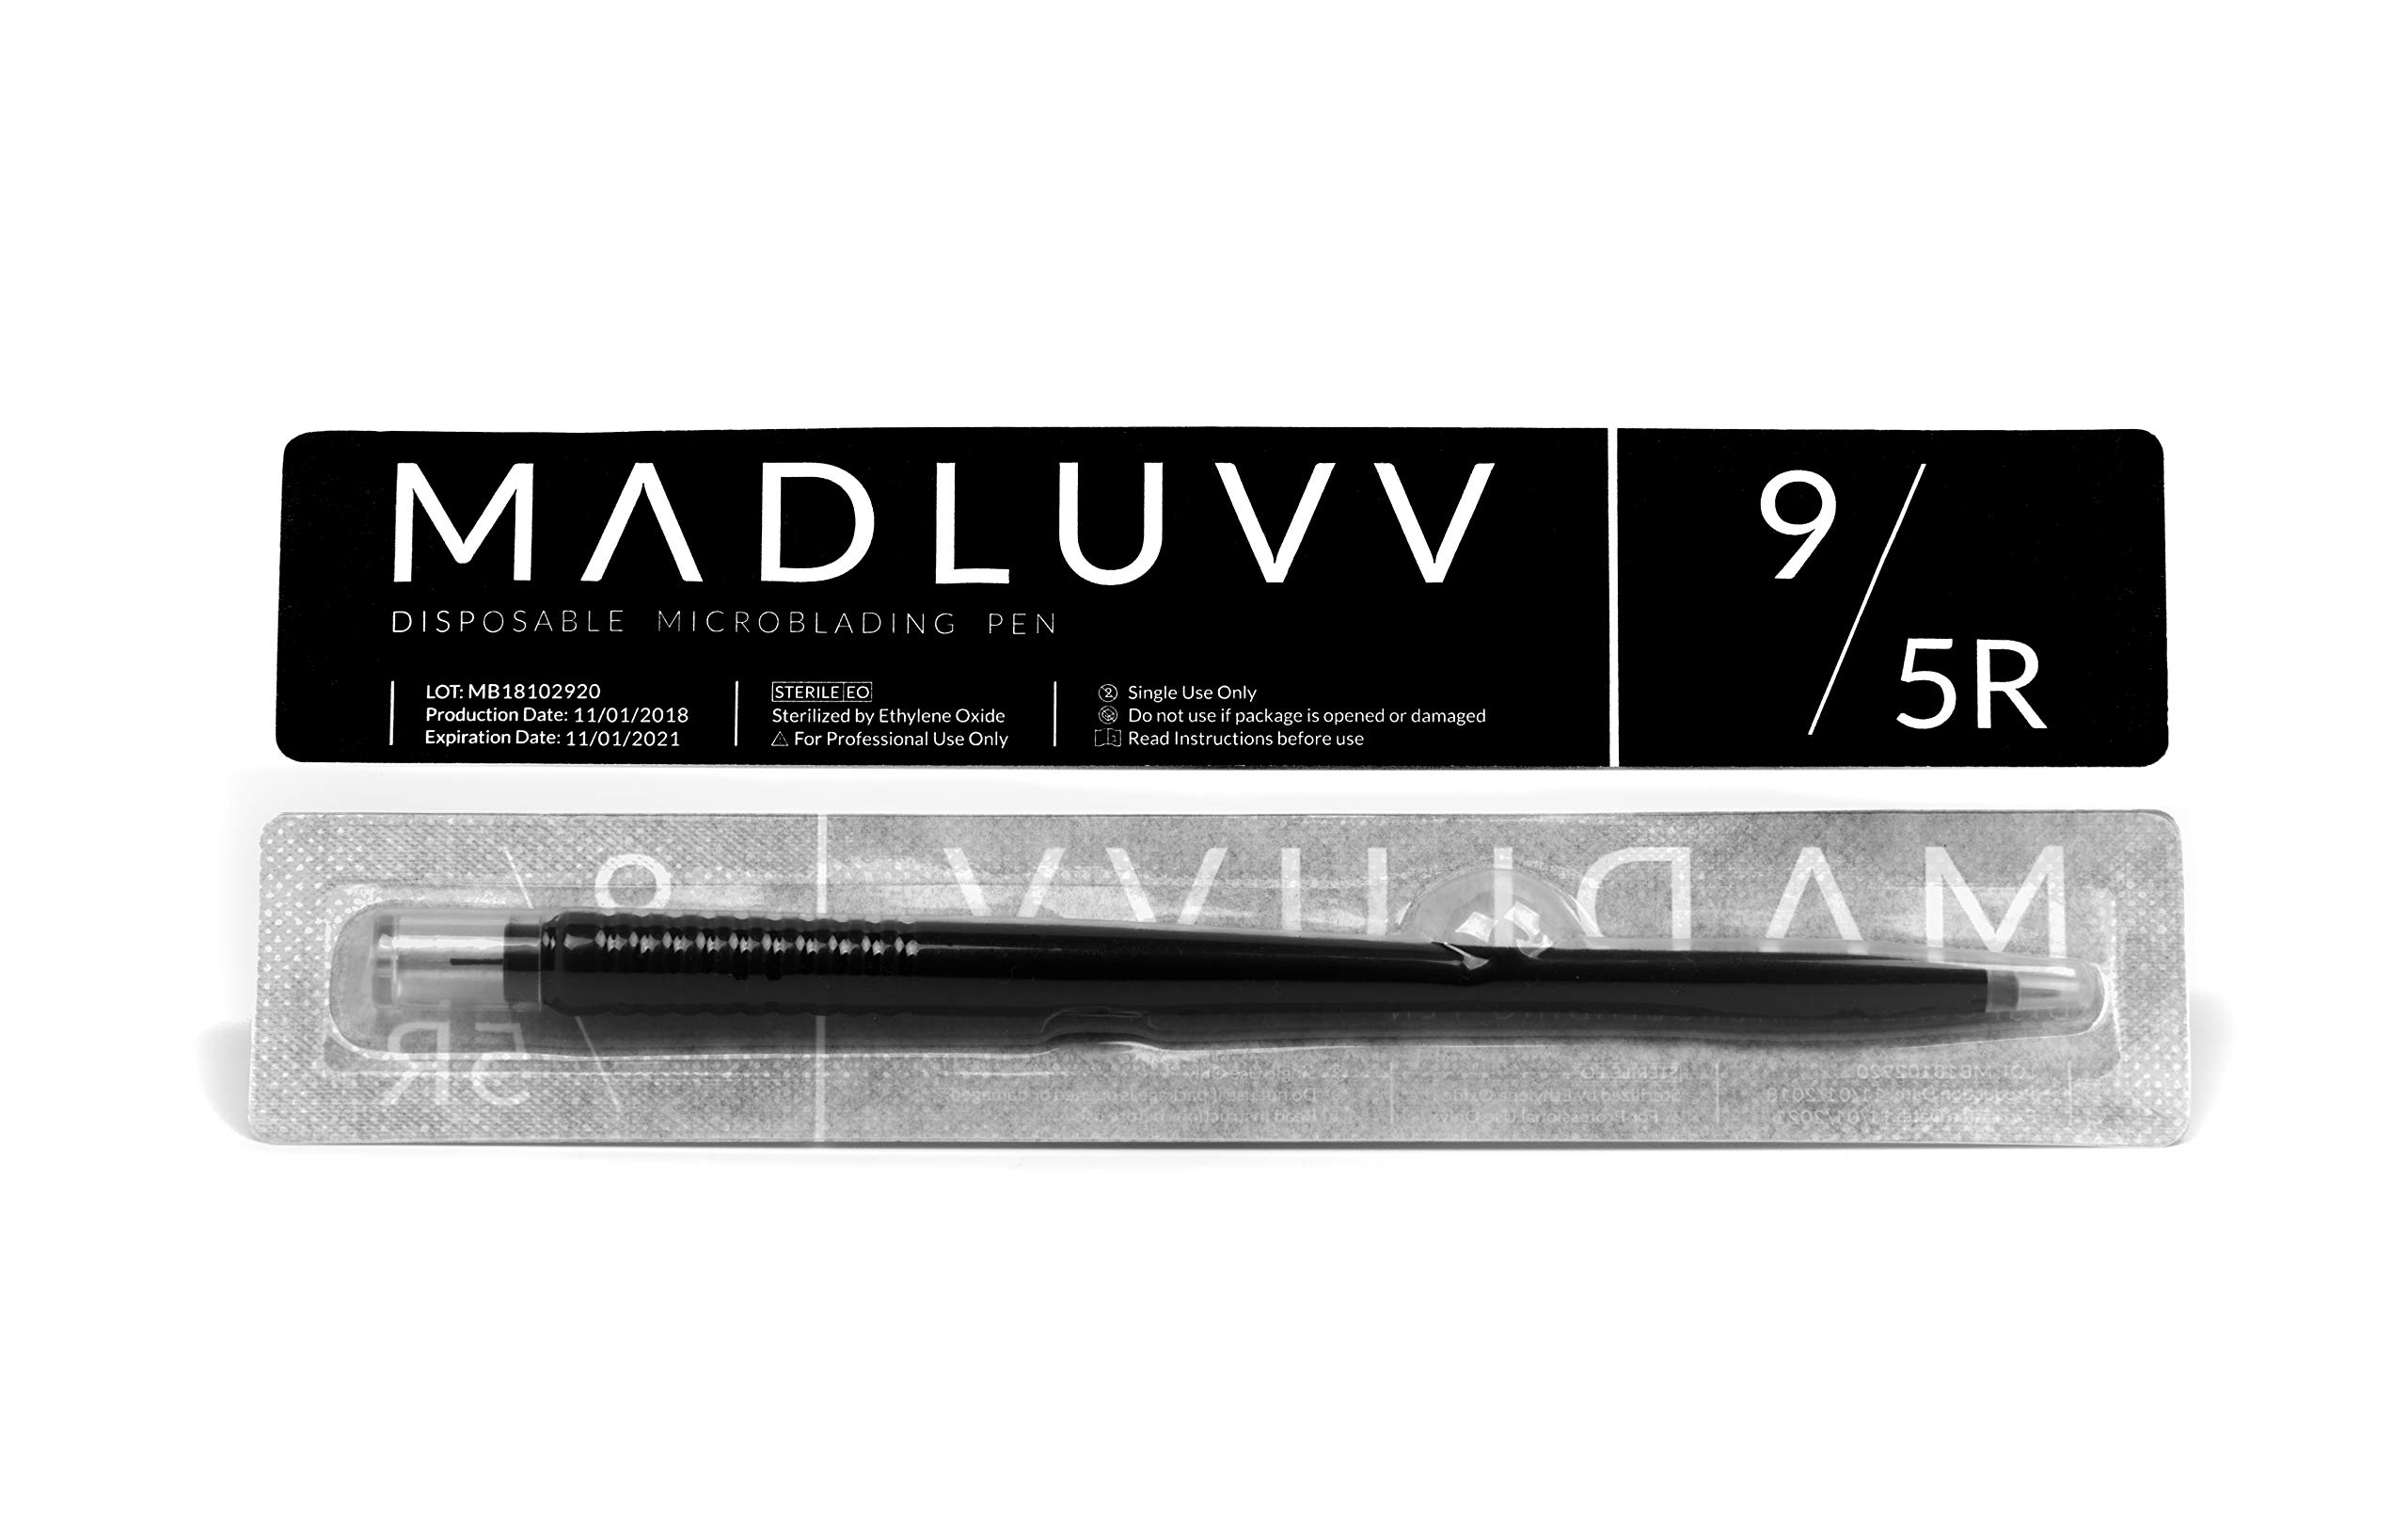 Best 2-in-1 Microblading Pen Supplies Kit for Flawless Eyebrows, 10 Pack, Premium Blading & Shader Microblades, Sterile Disposable Micro Brow Sharp Needles, Professional Double-Sided Ink Pens (9/5r) by MADLUVV (Image #4)